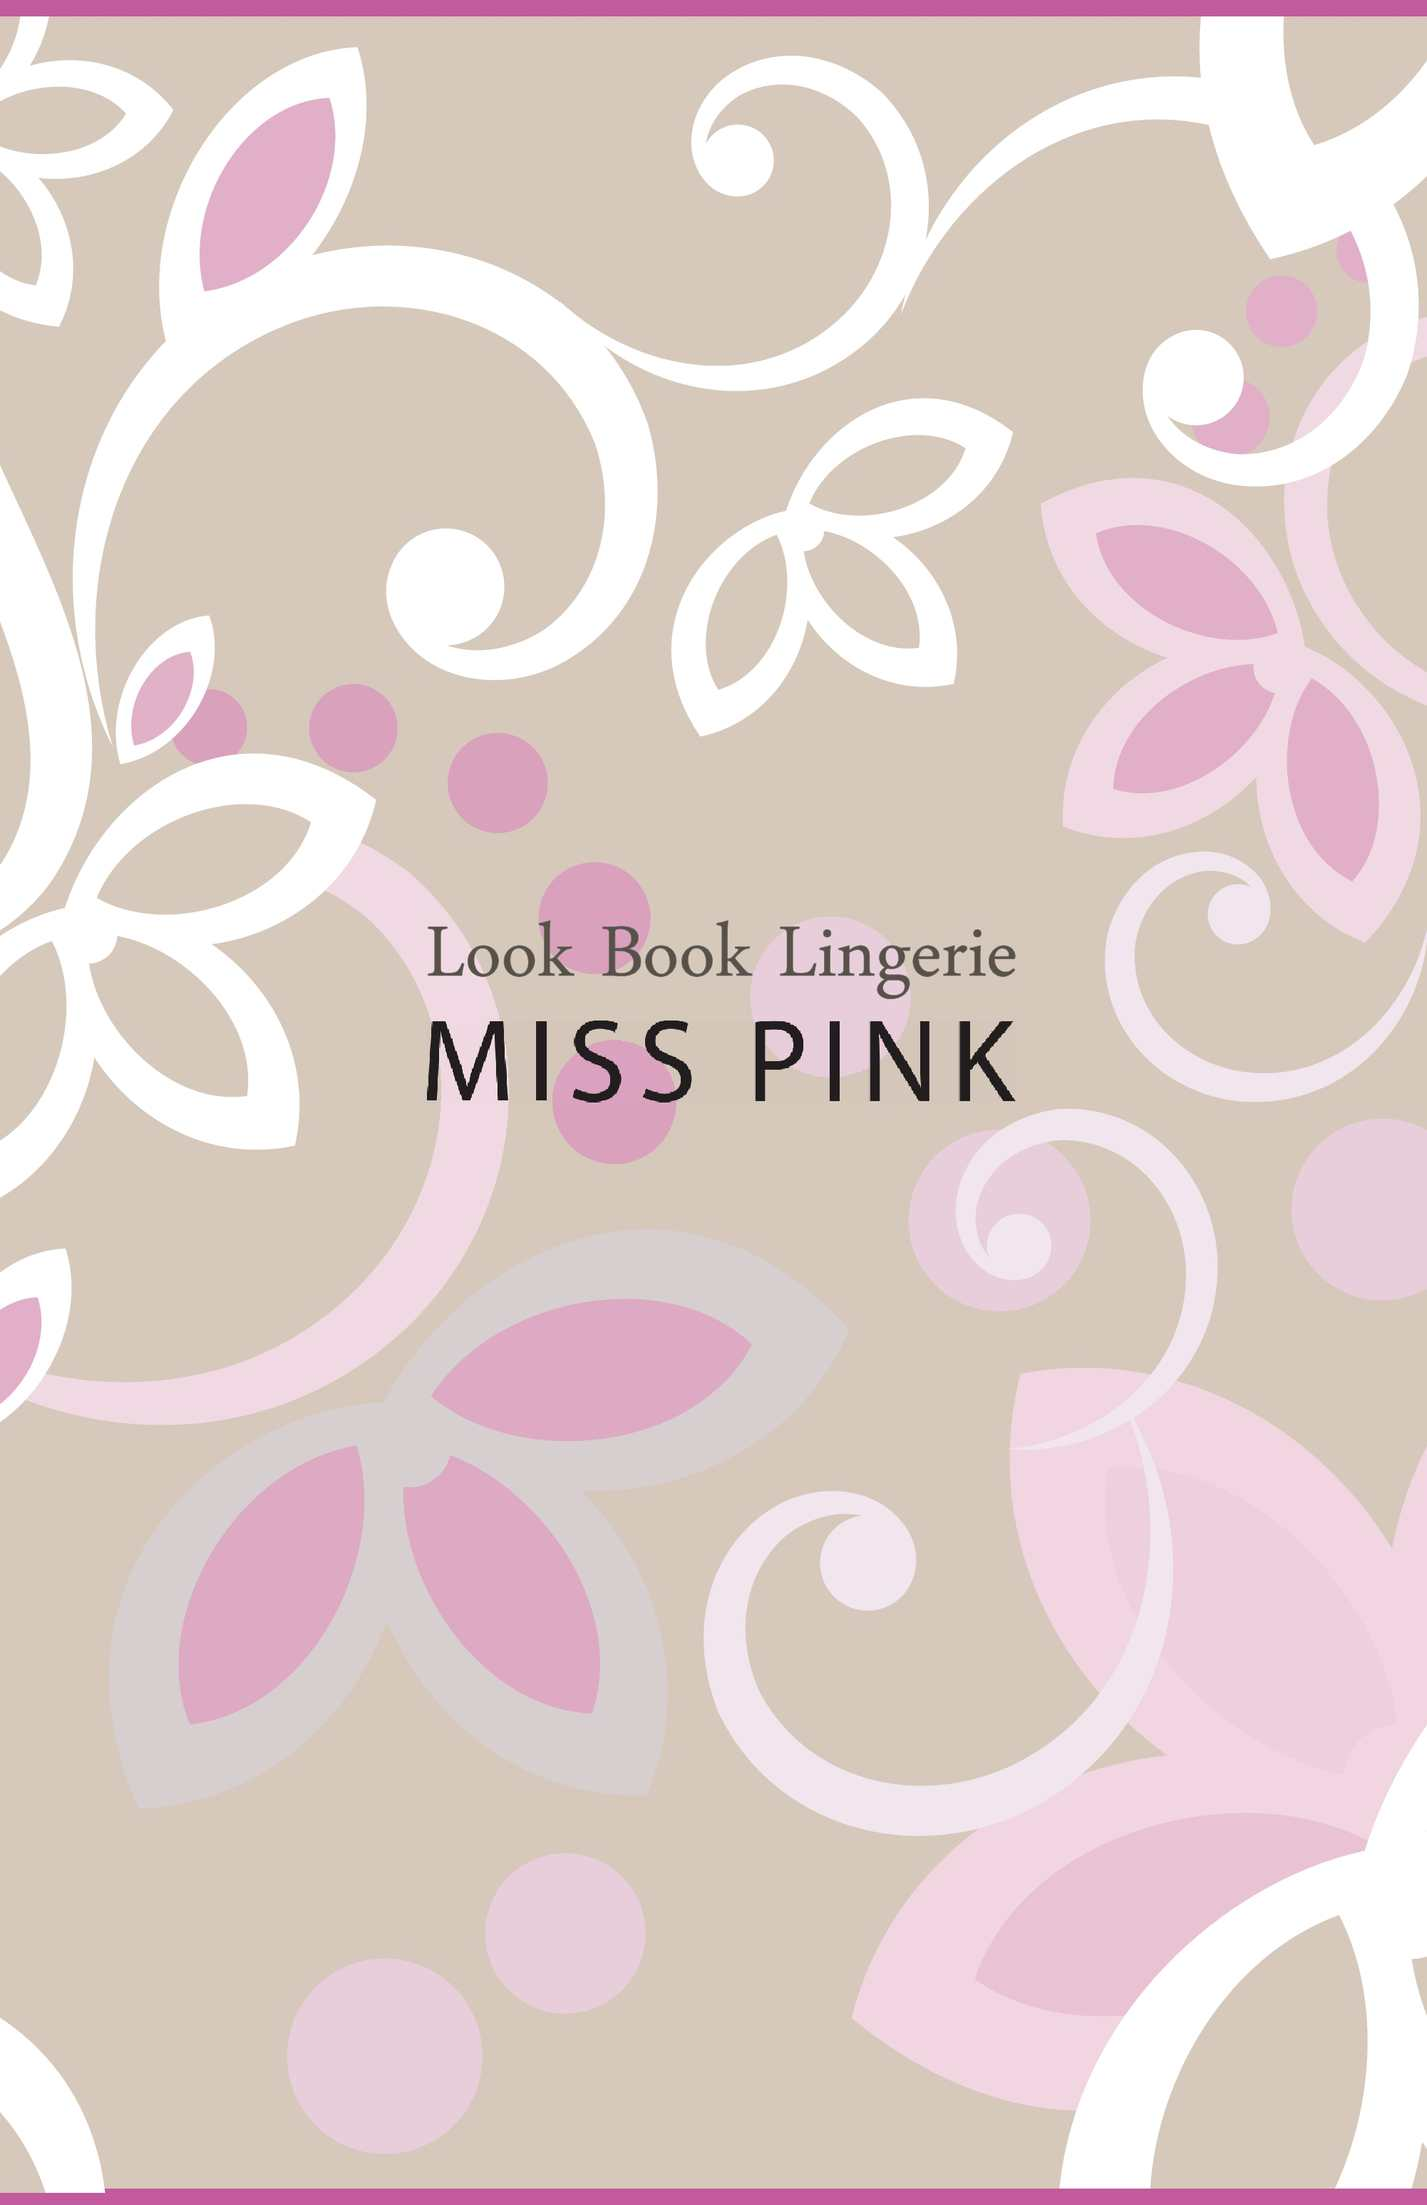 Look Book Miss Pink Lingerie